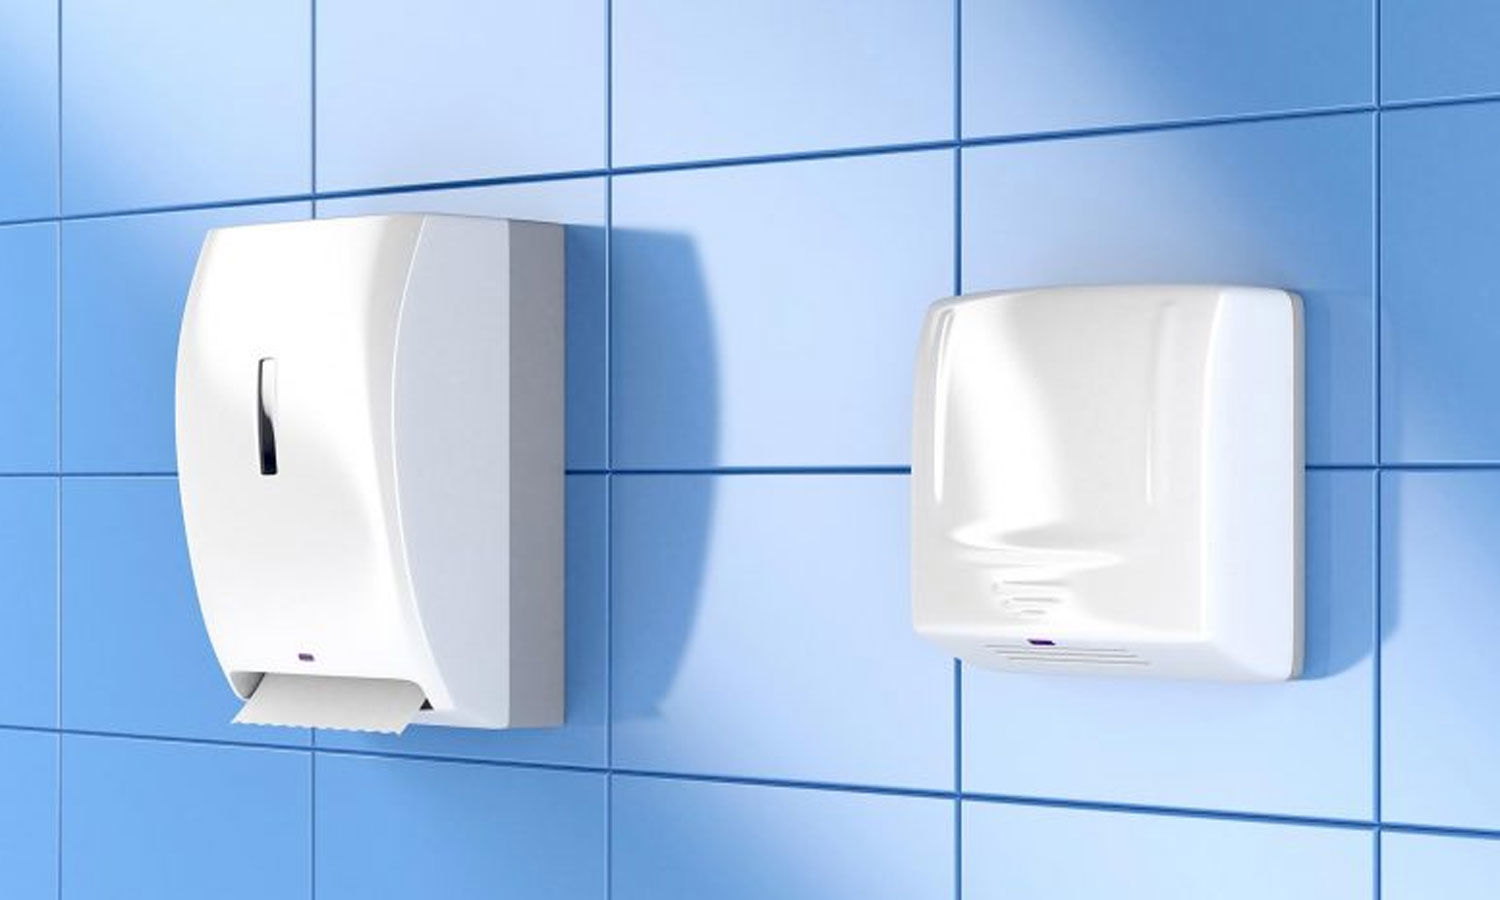 Paper towels more effective at removing viruses than hand dryers: Study